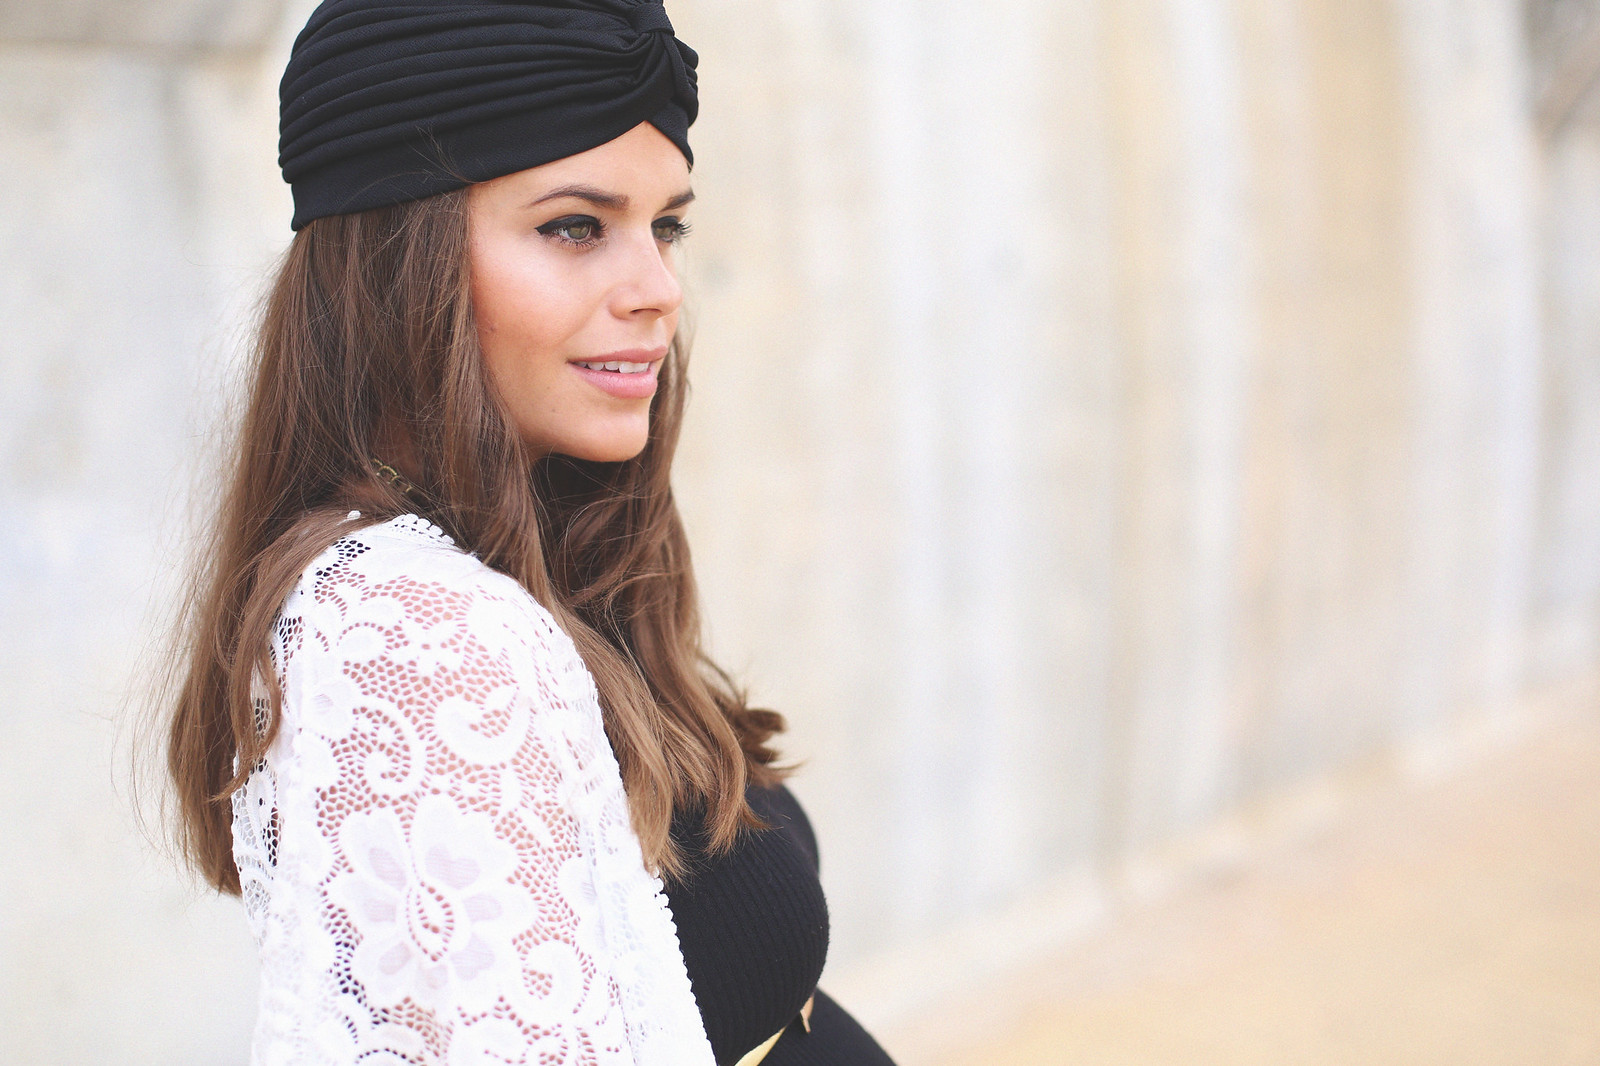 8. long black dress lace top jacket boho chic outfit - jessie chanes - pregnancy